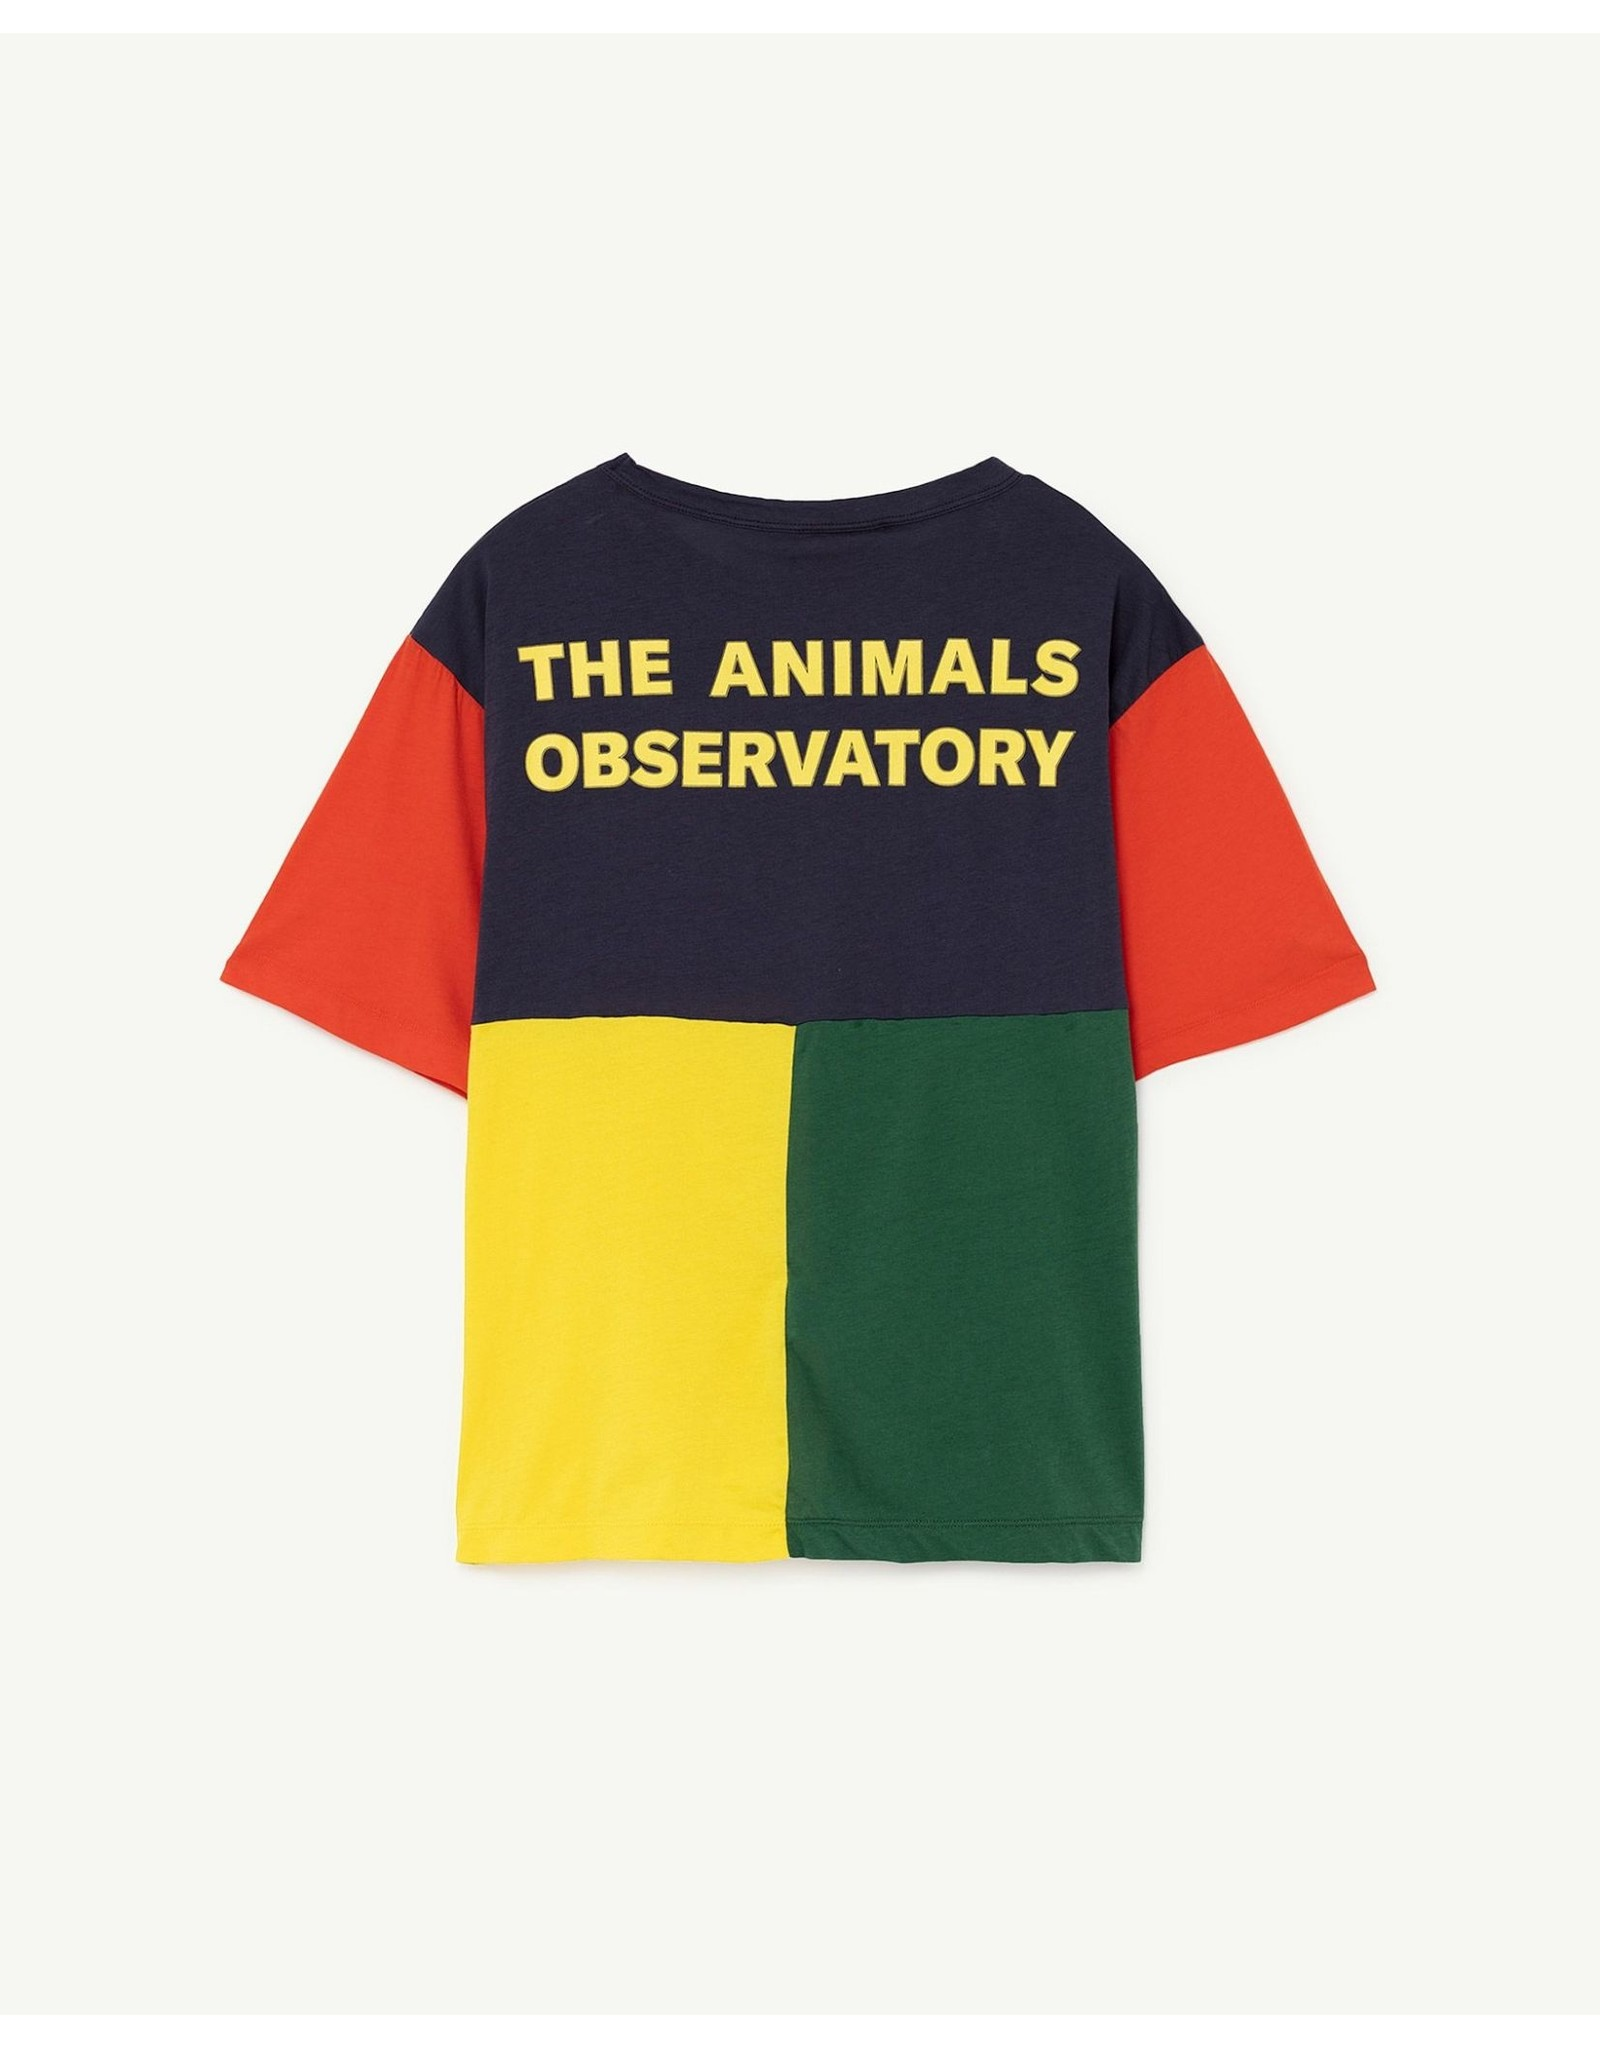 The Animal Observatory TAO PS21 024064AT Rooster Kids T-shirt oversized